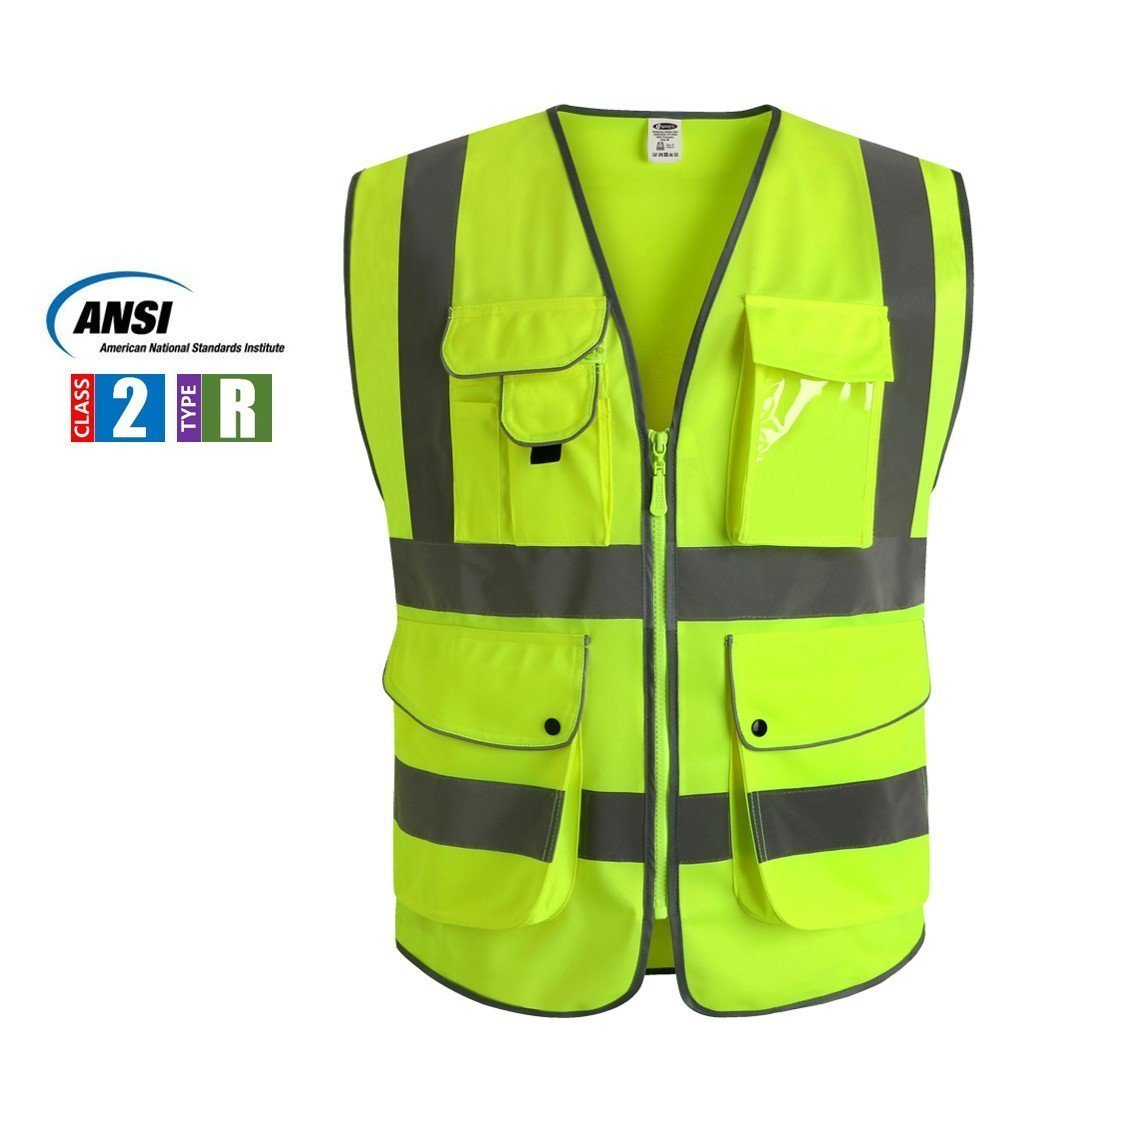 JKSafety 9 Pockets Class 2 High Visibility Zipper Front Safety Vest With Reflective Strips, Yellow Meets ANSI/ISEA Standards (X-Large)